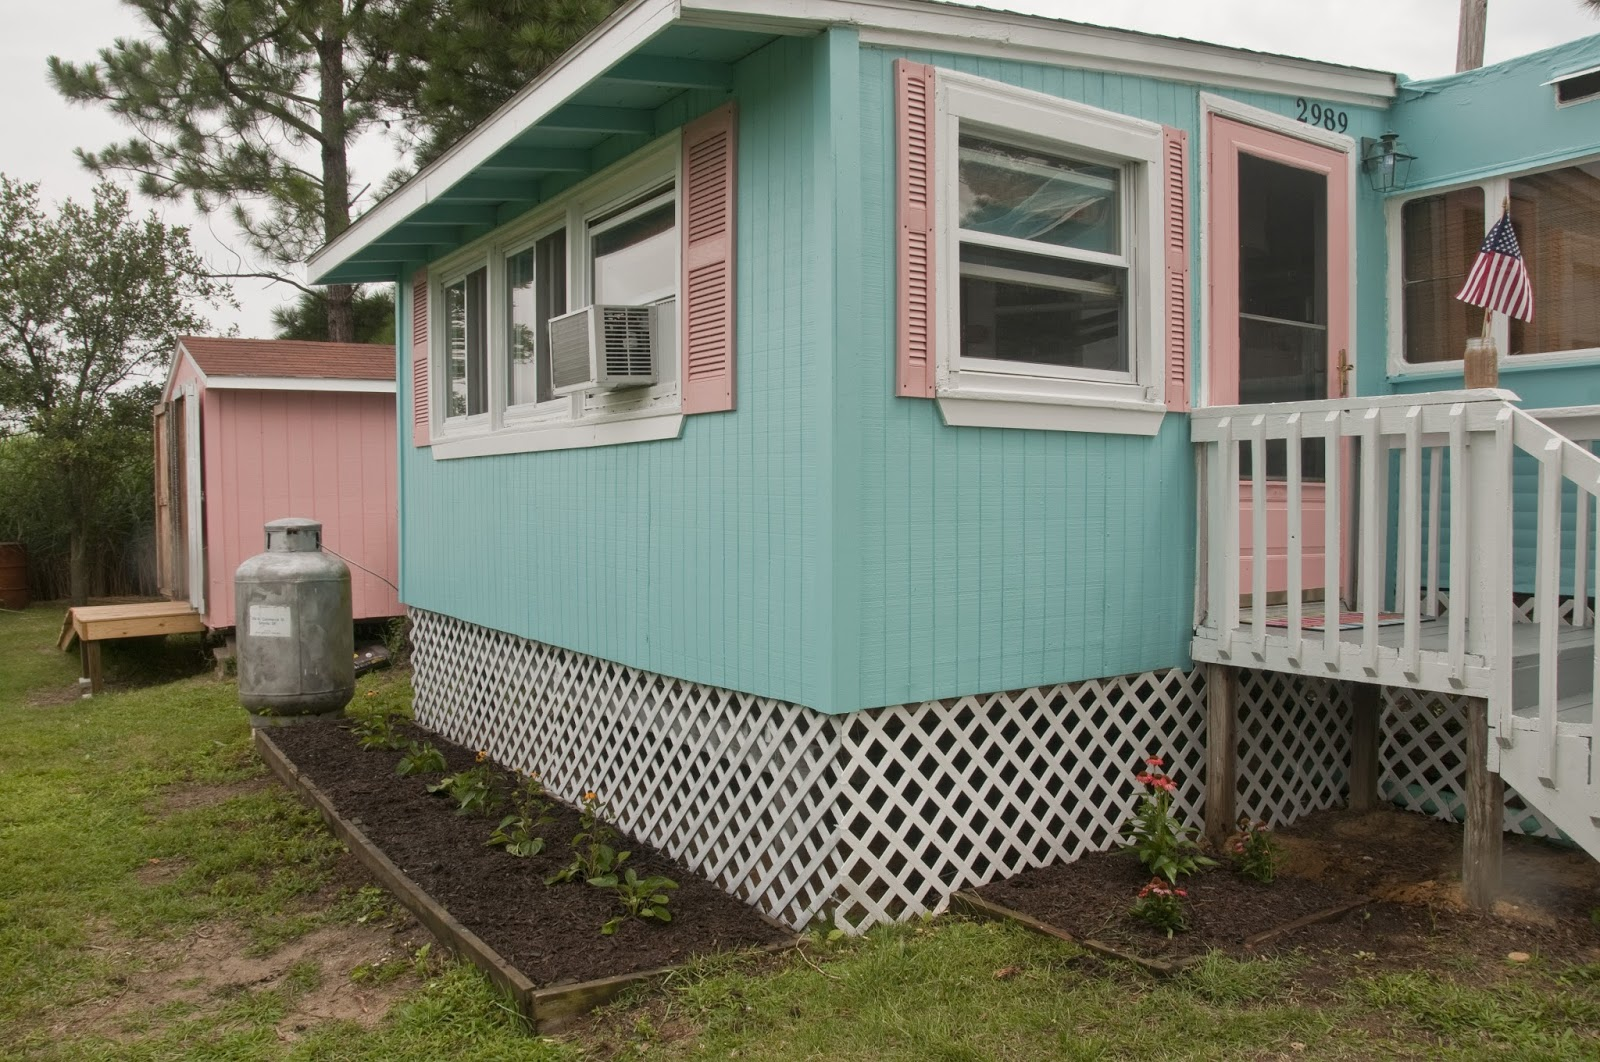 Paint For Mobile Homes Exterior valspar kelly moore exterior paint colors Vintage Mobile Home Makeover